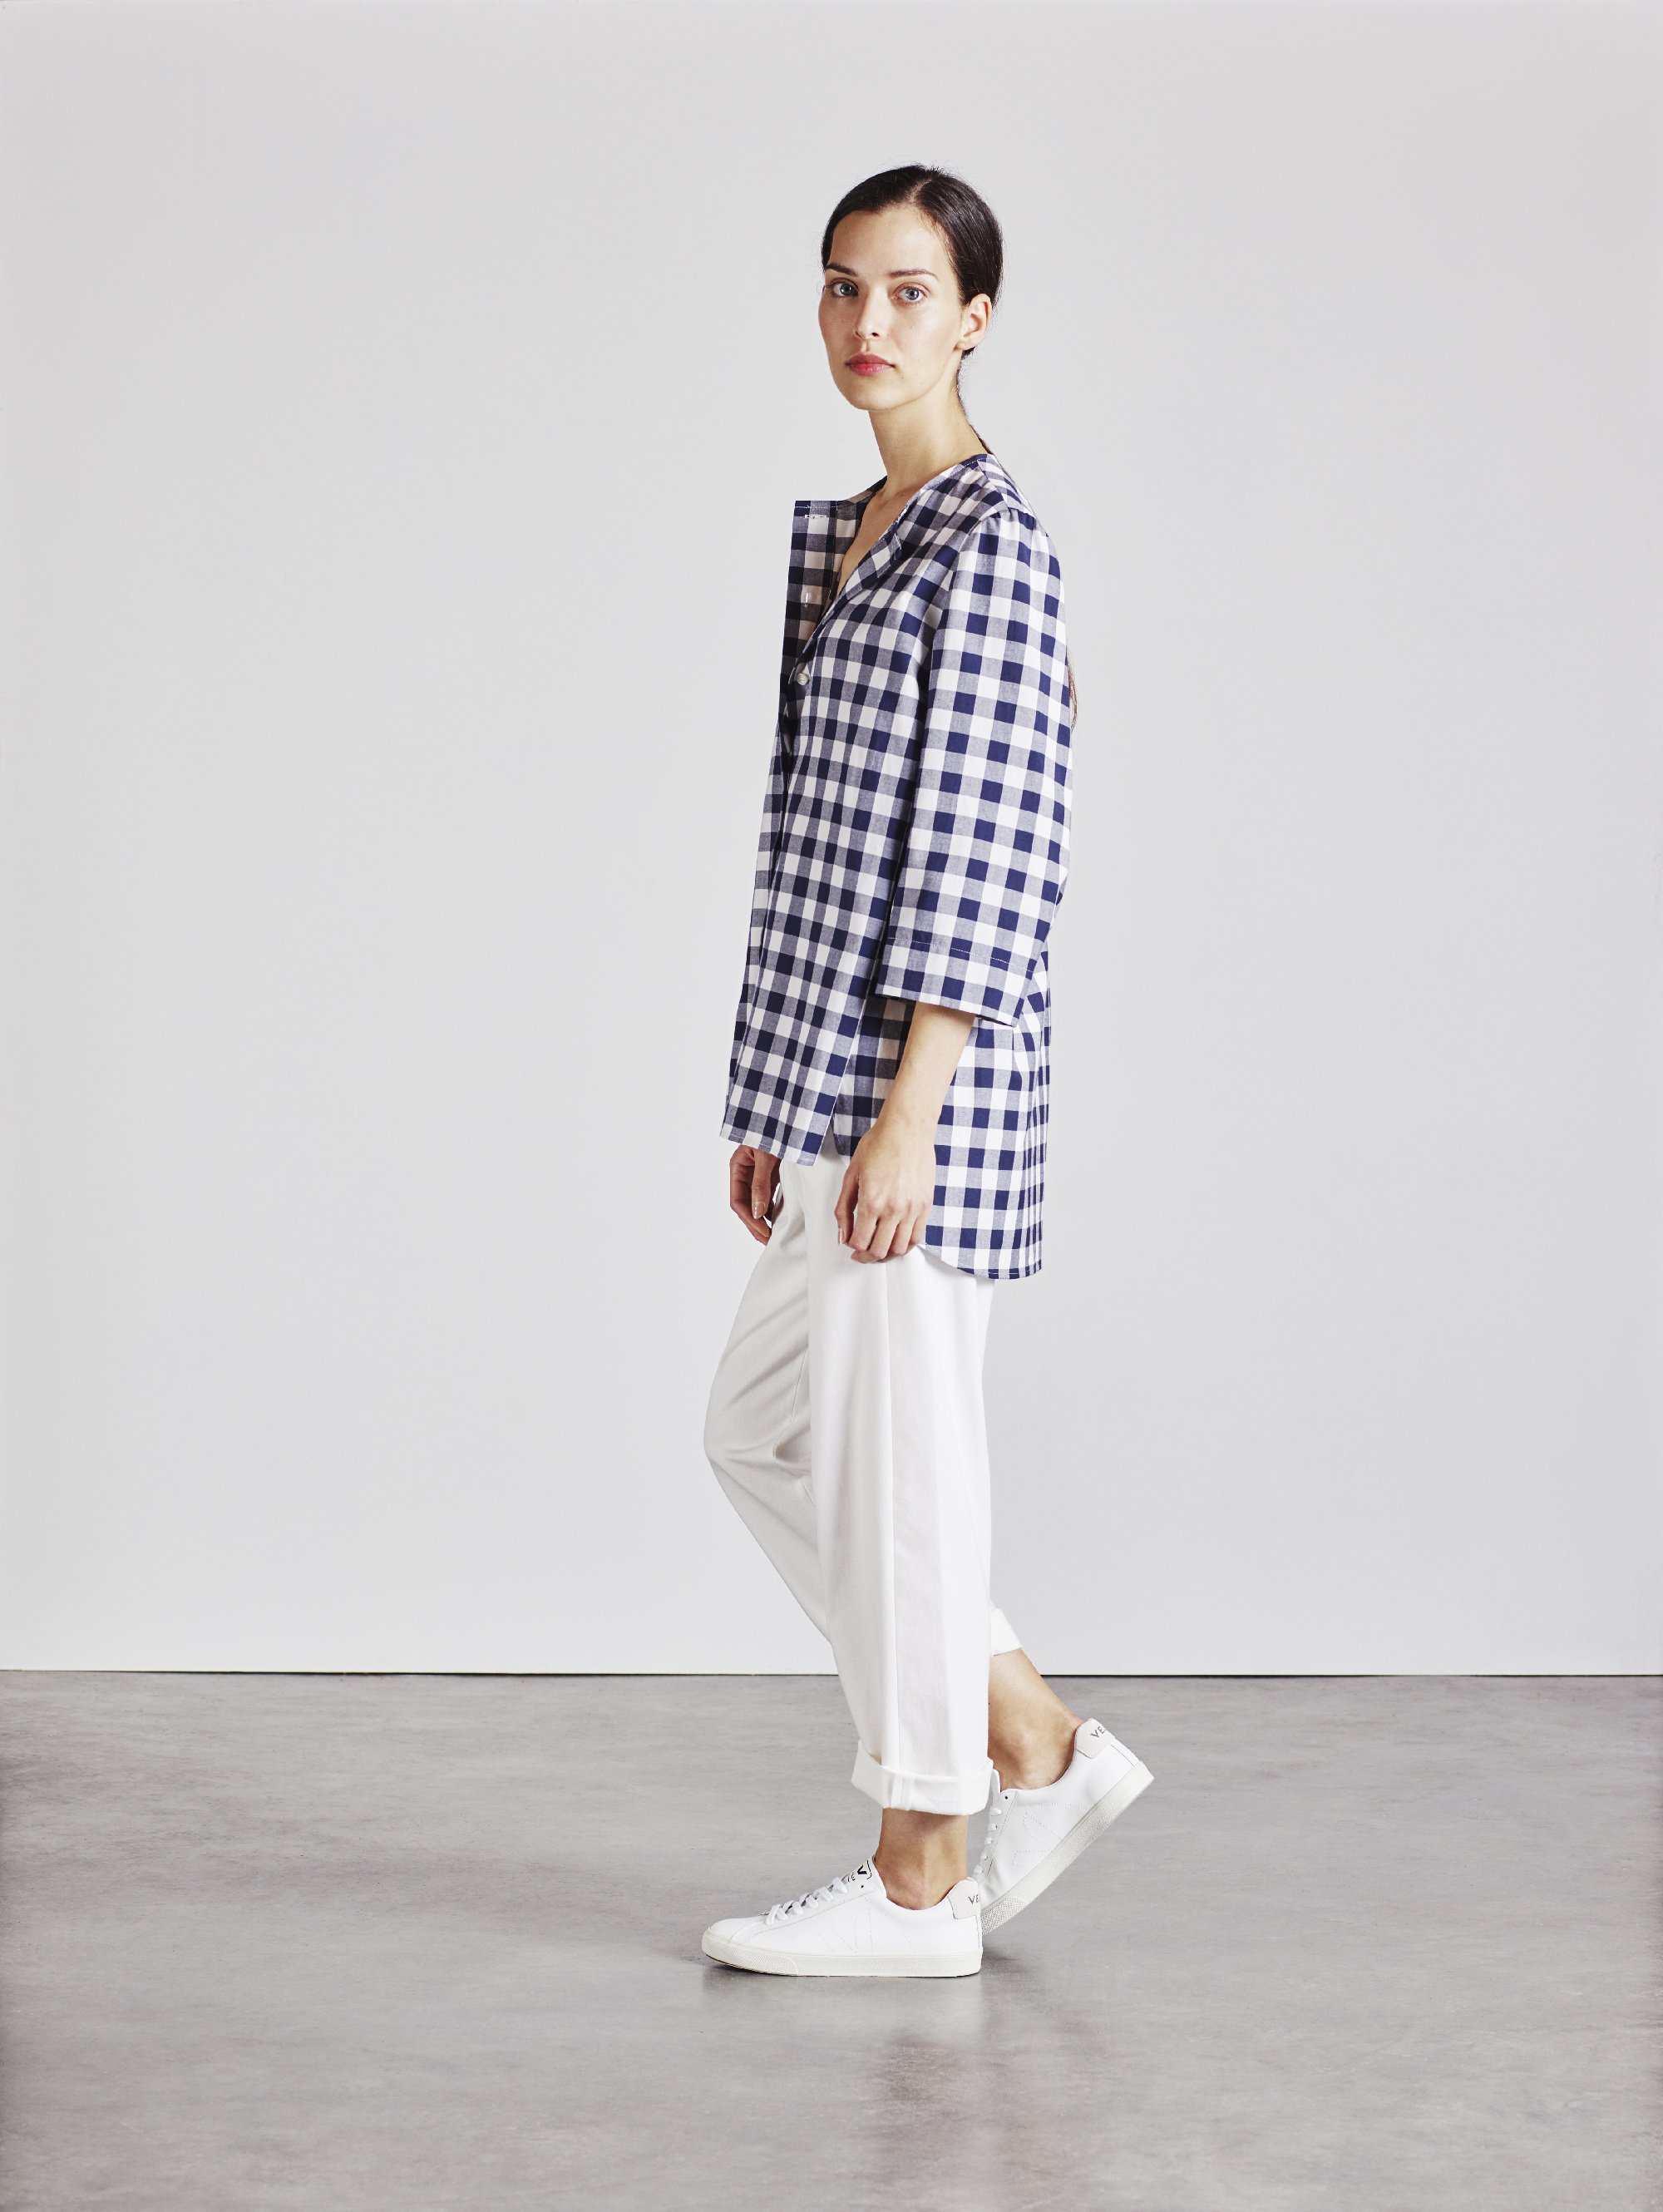 Alice Early Bethan Shirt in Check